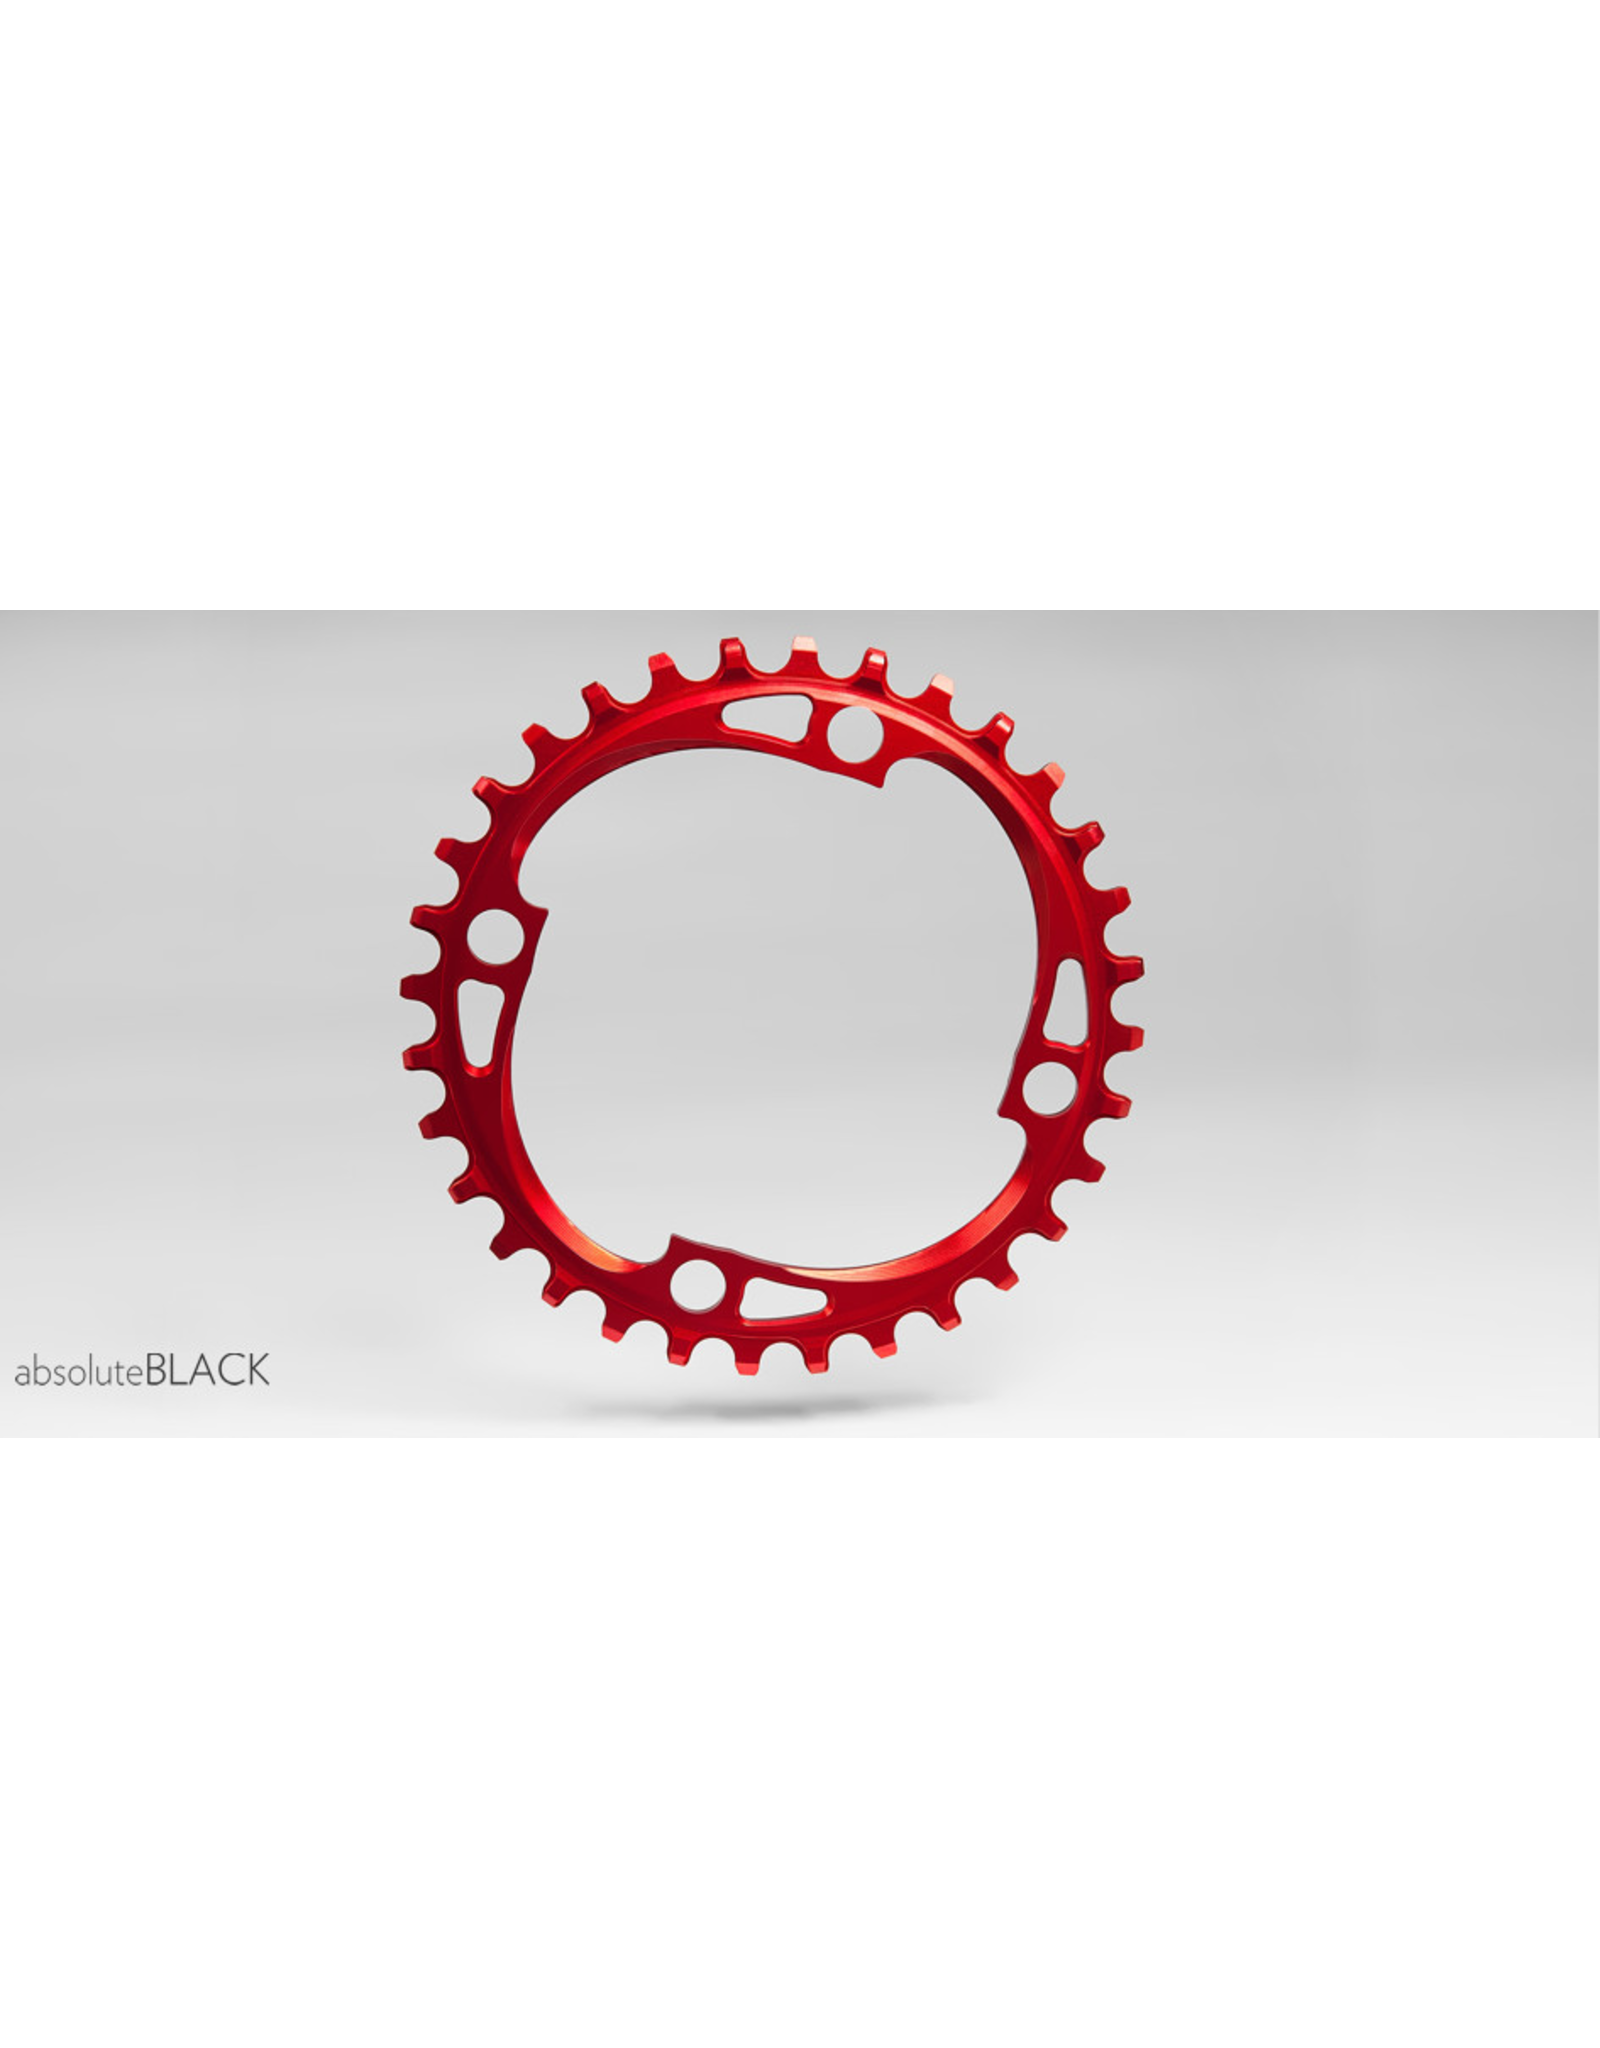 ABSOLUTE BLACK CHAINRING ABSOLUTE BLACK 4 BOLT 104 X 32T RED